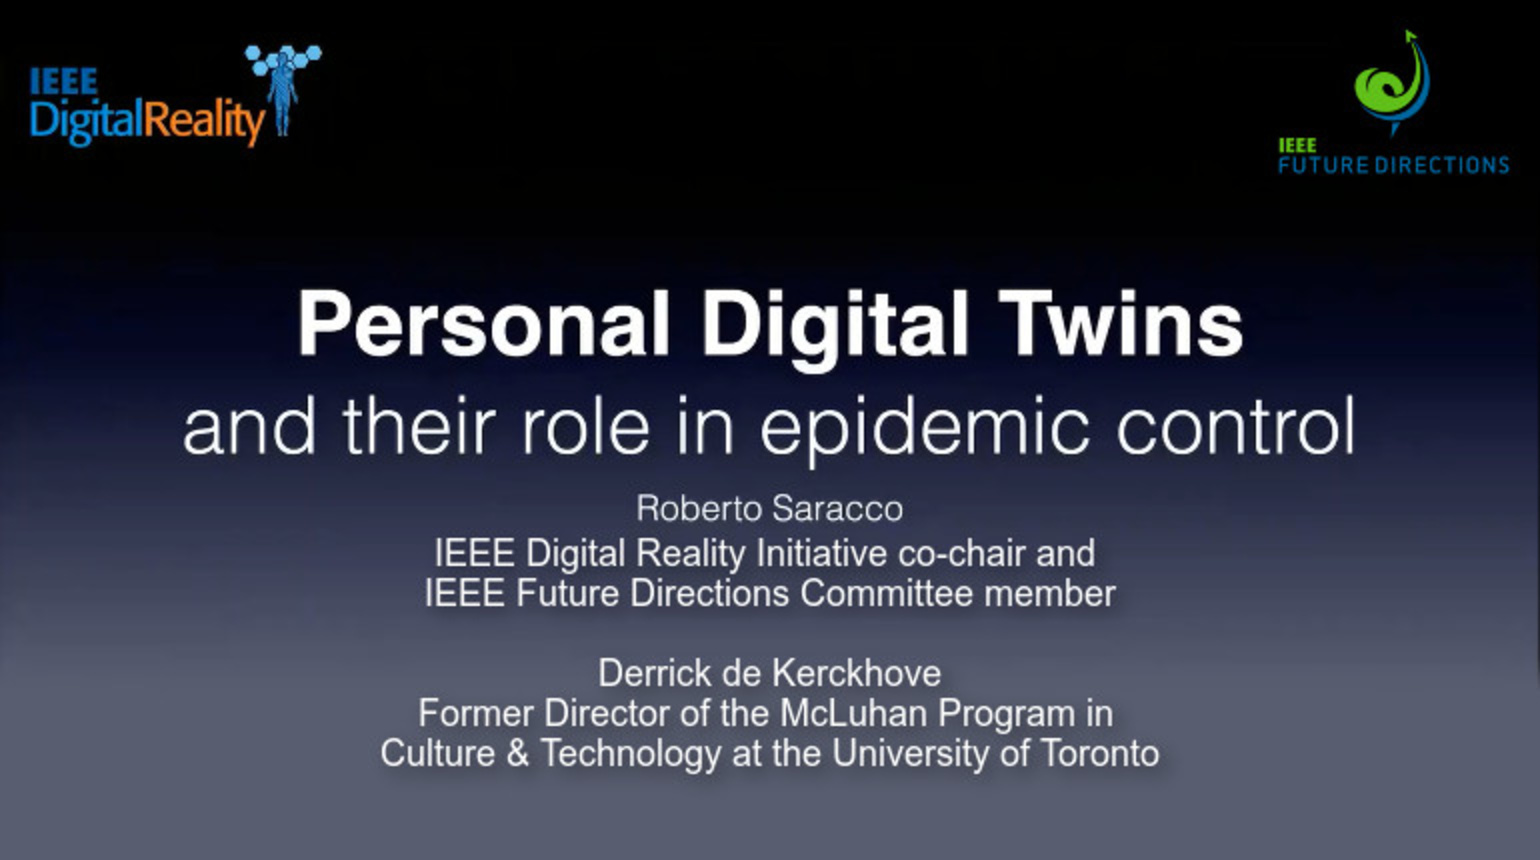 IEEE Digital Reality: Personal Digital Twins (PDTs) and Their Role in Epidemics Control